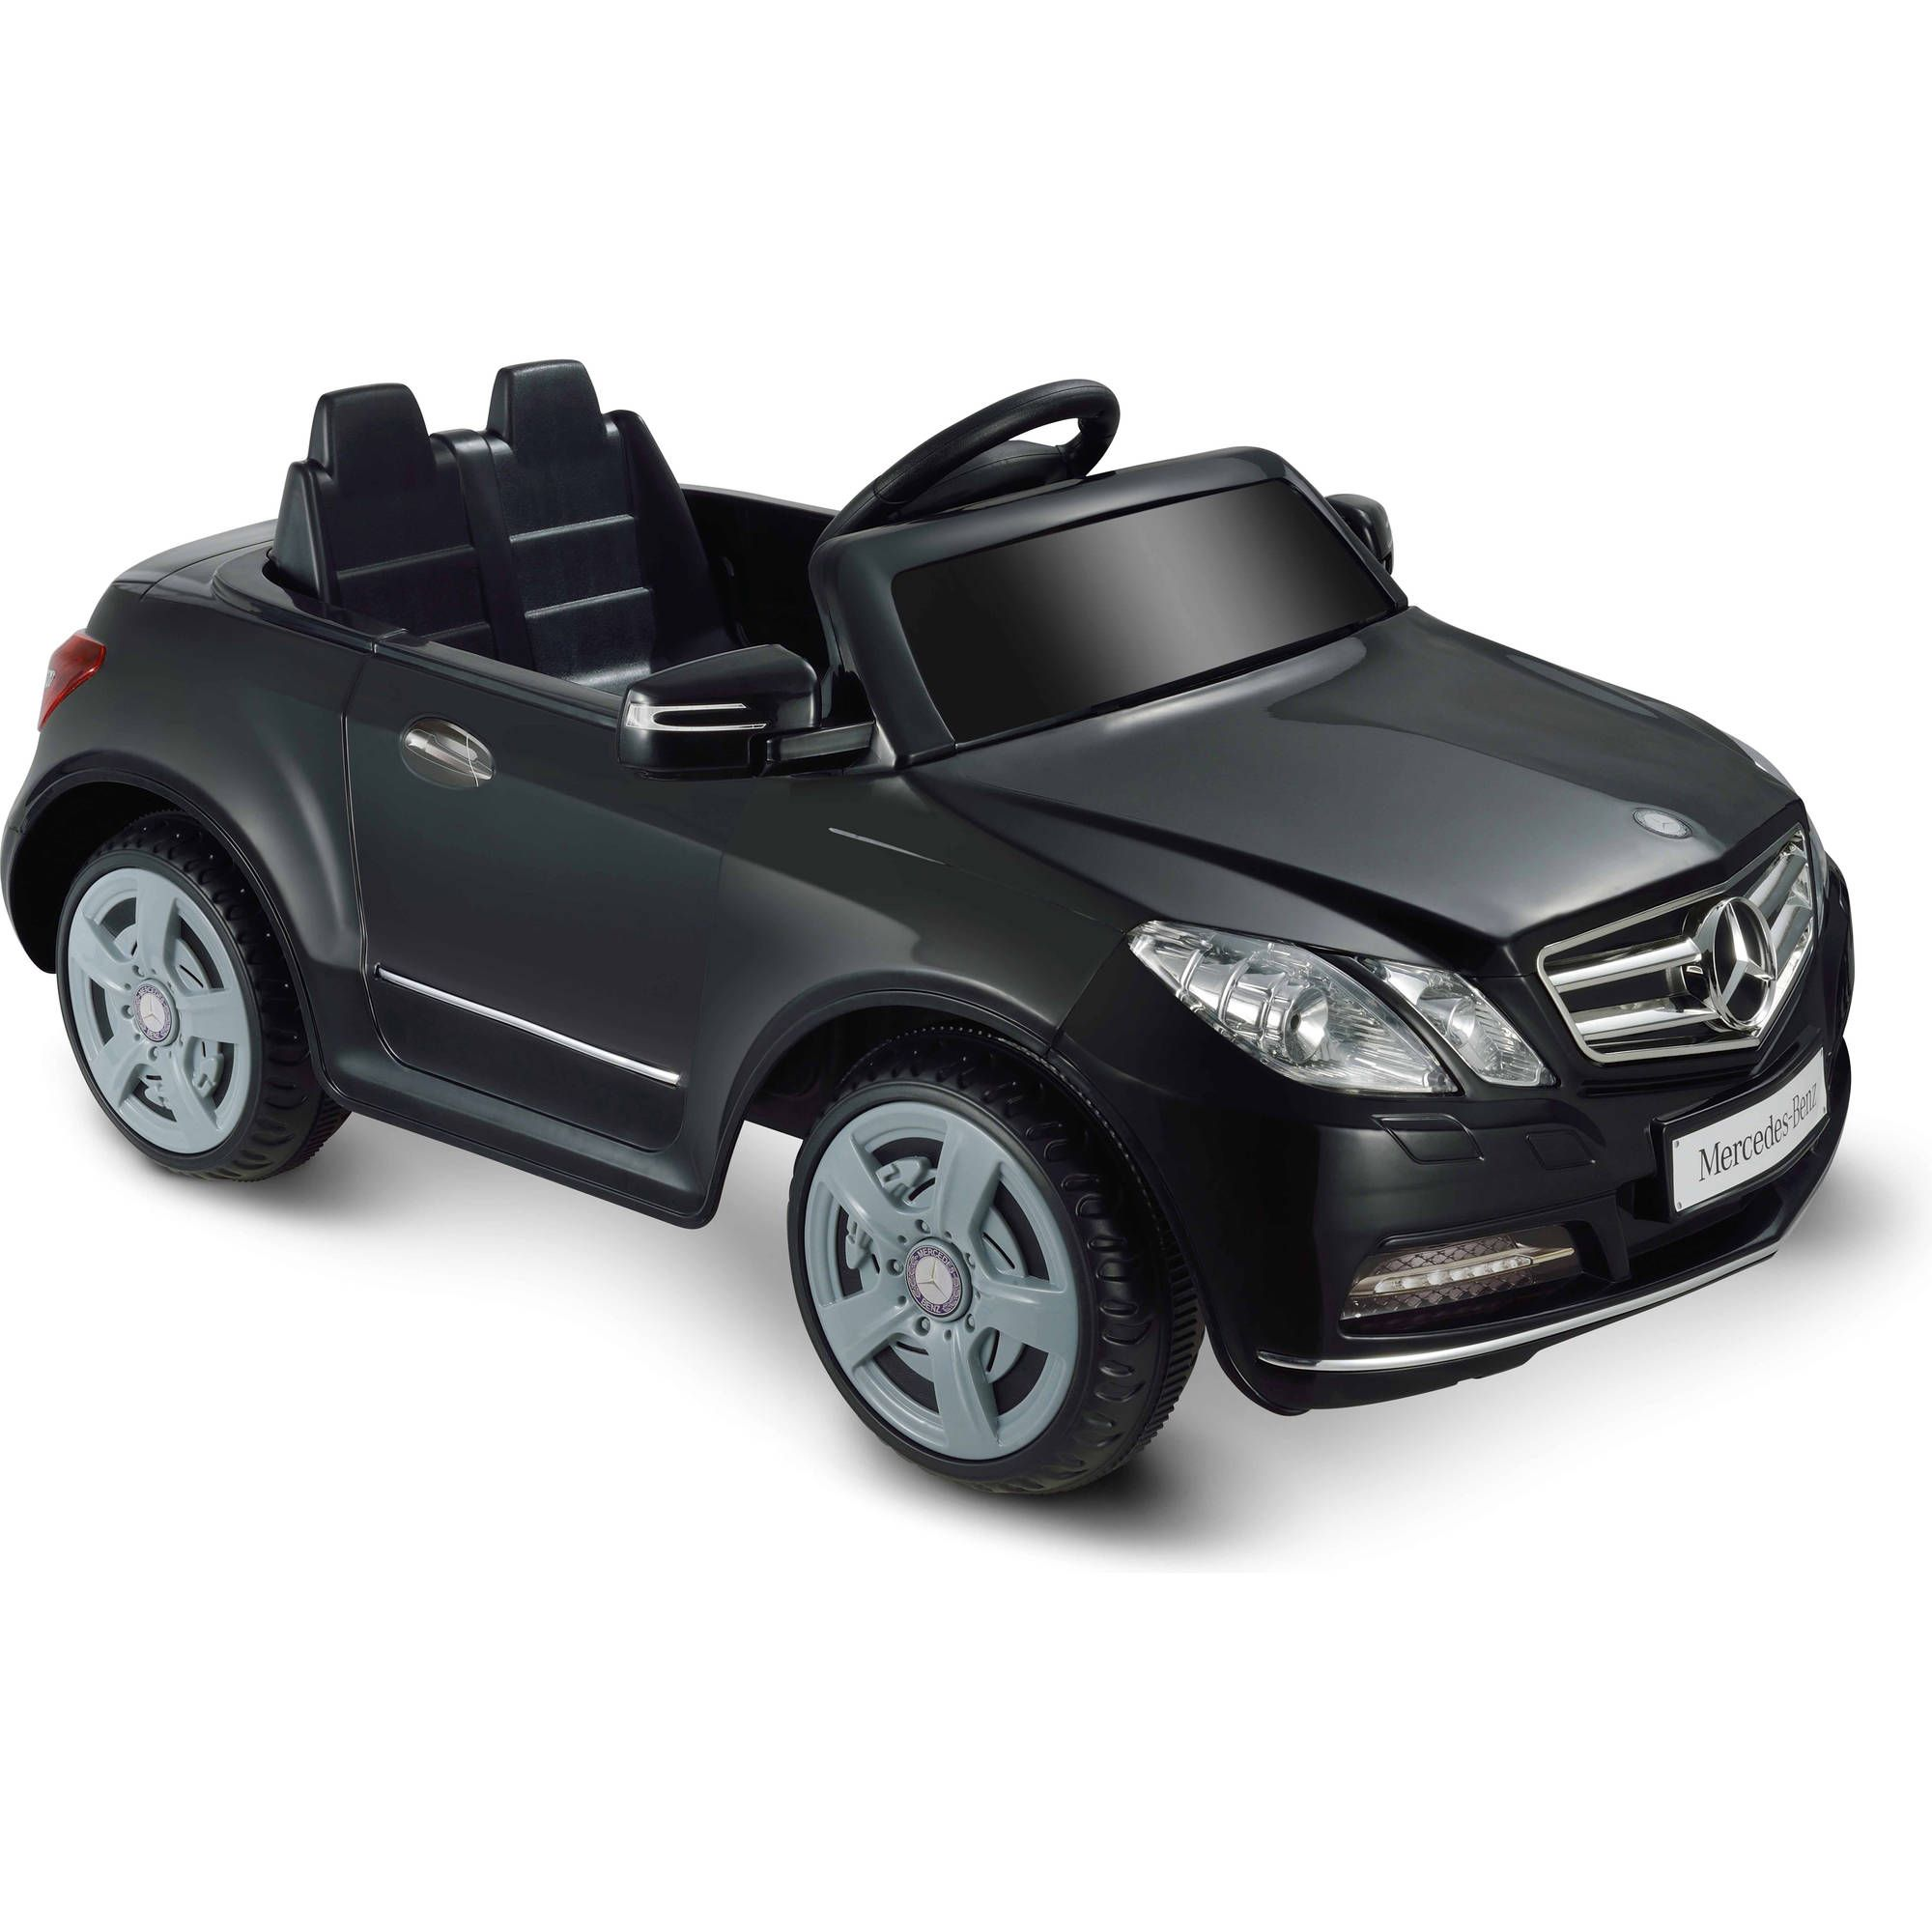 Beau Kid Motorz One Seater Mercedes Benz Battery Operated Ride On